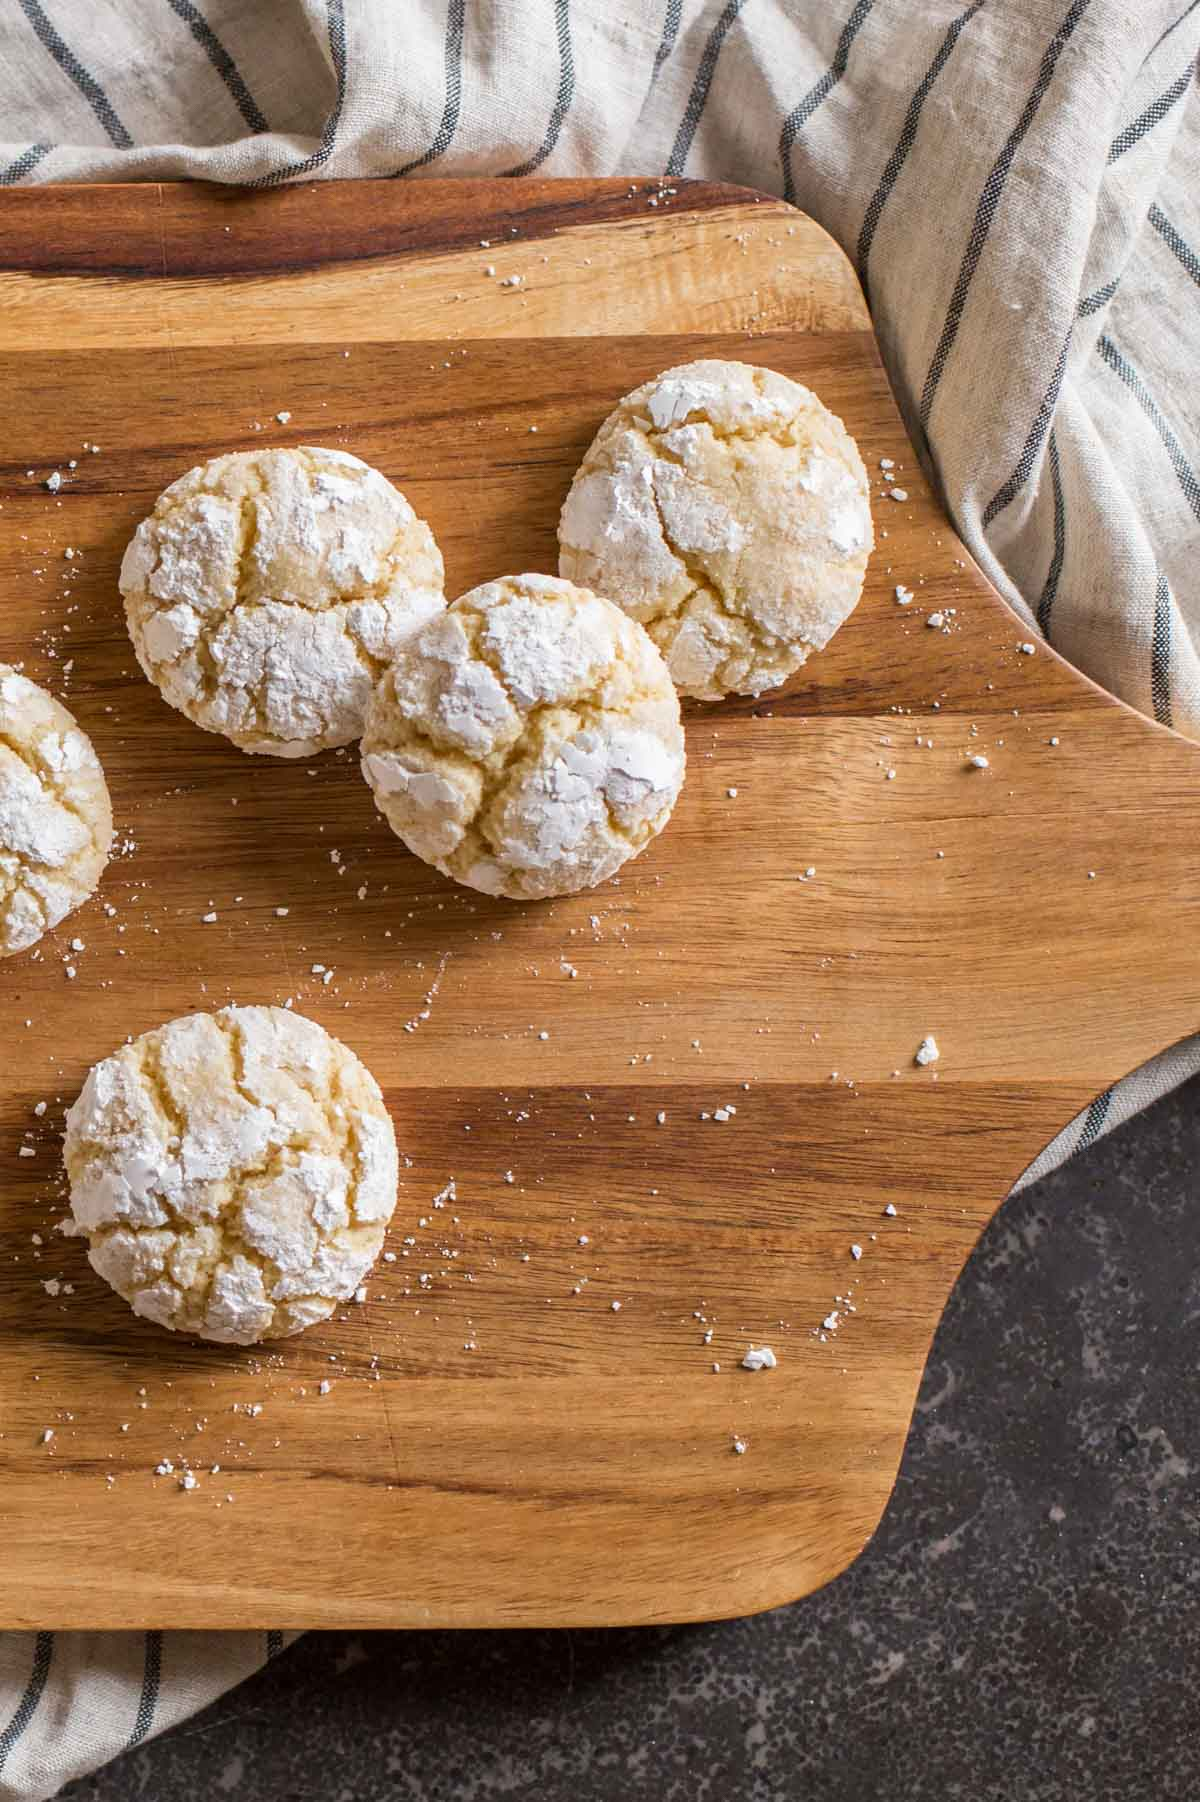 Brown Butter Almond Crinkle Cookies on a wood cutting board.